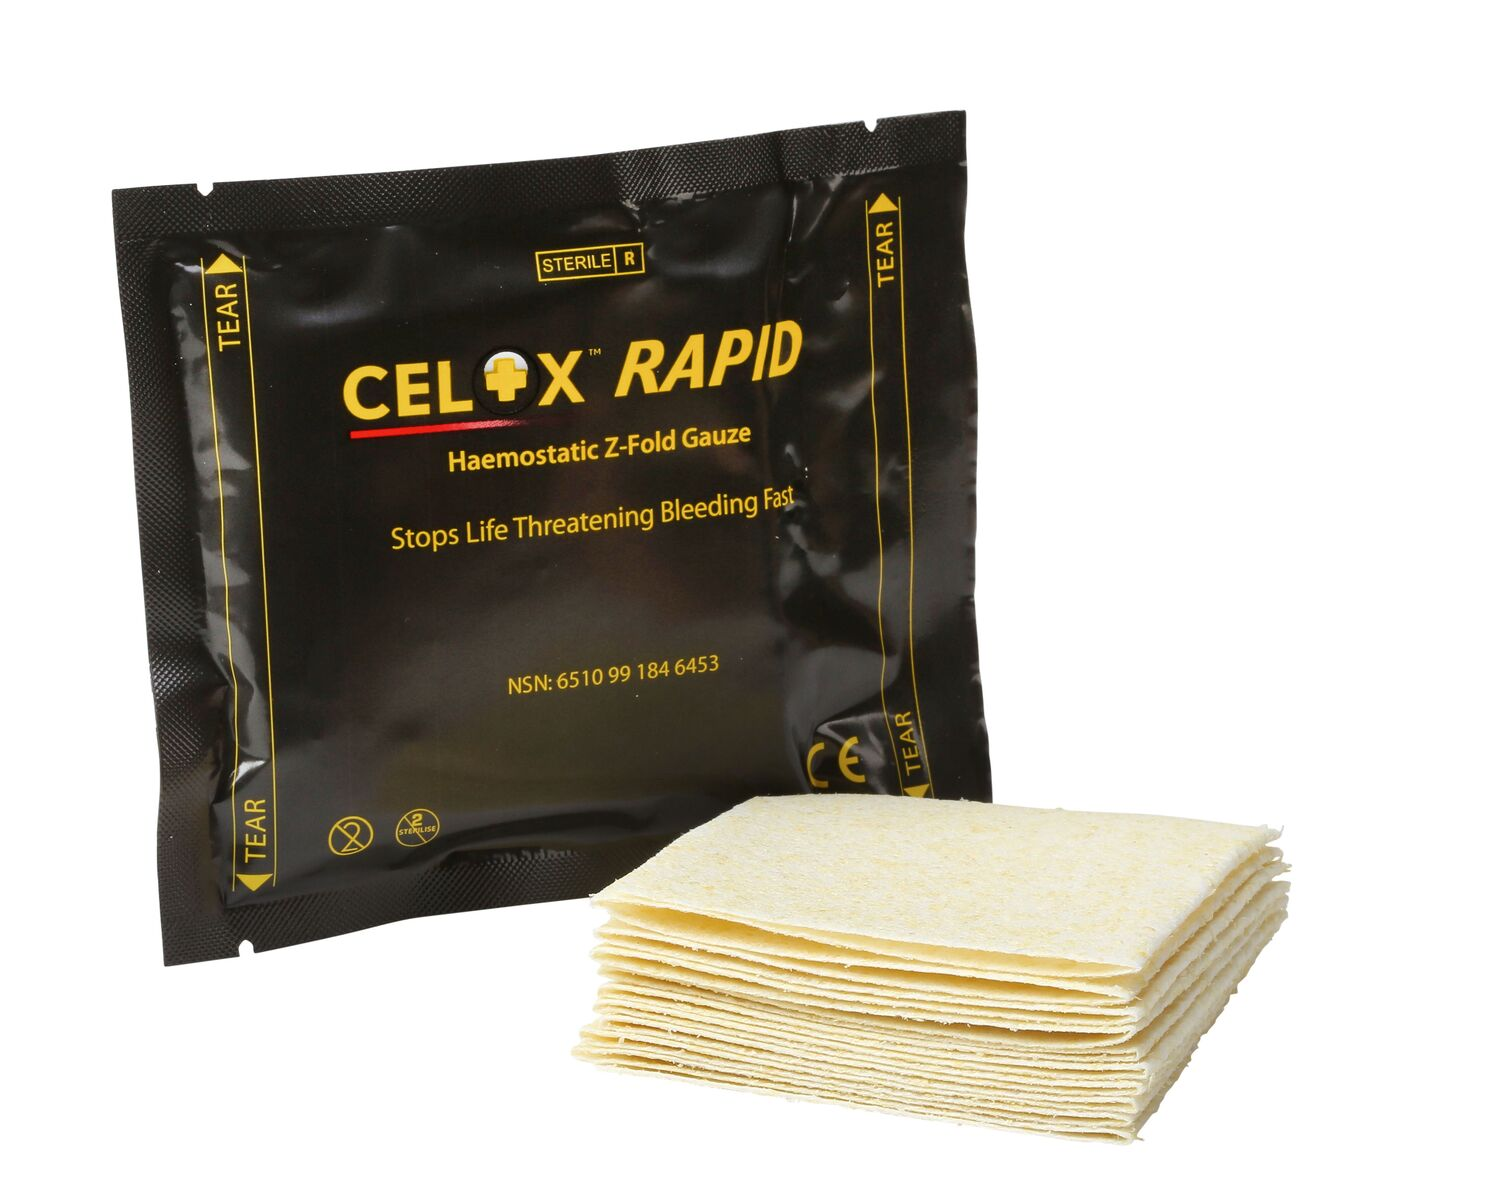 How to use Celox Rapid